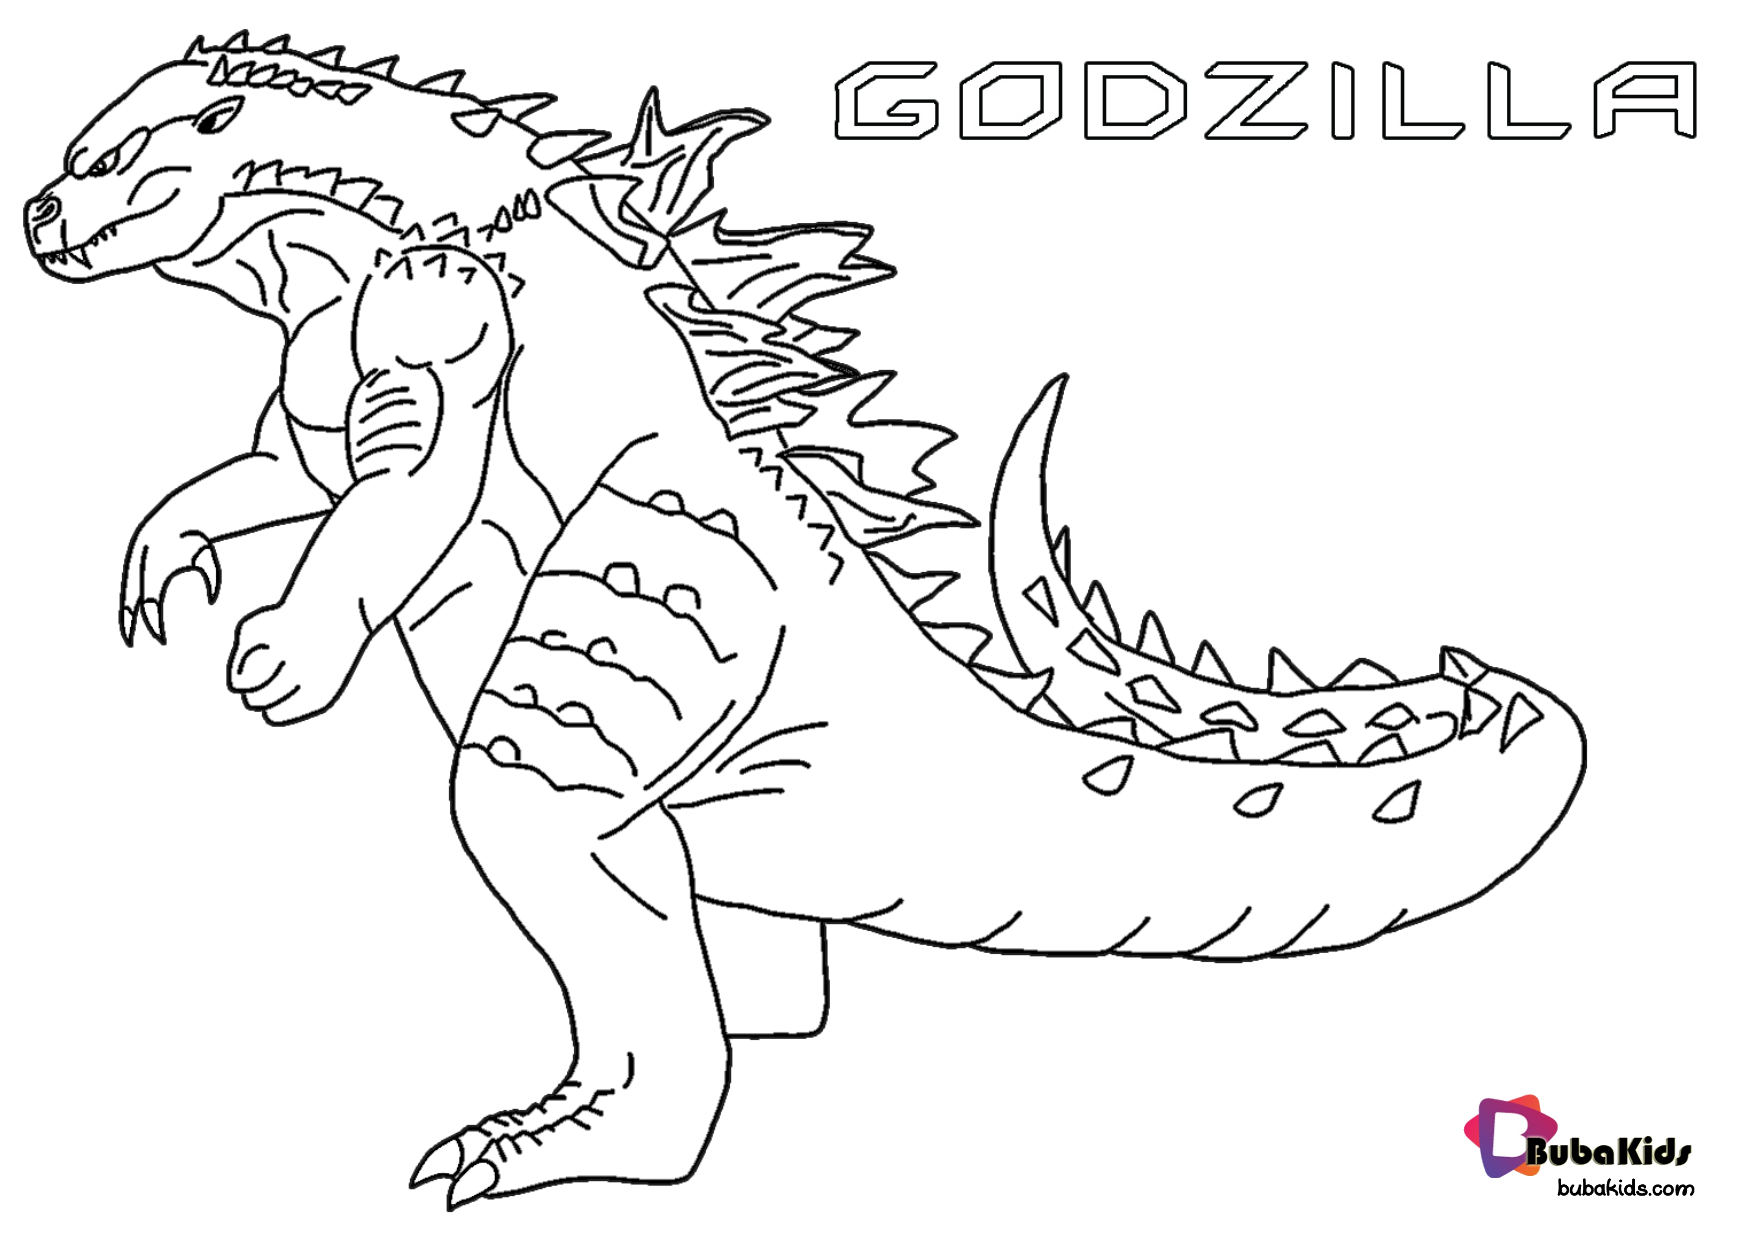 Free And Printable Godzill Or Kaiju Giant Monsters Coloring Pages Godzilla Kaiju Monsters Go In 2020 Monster Coloring Pages Coloring Pages Cartoon Coloring Pages